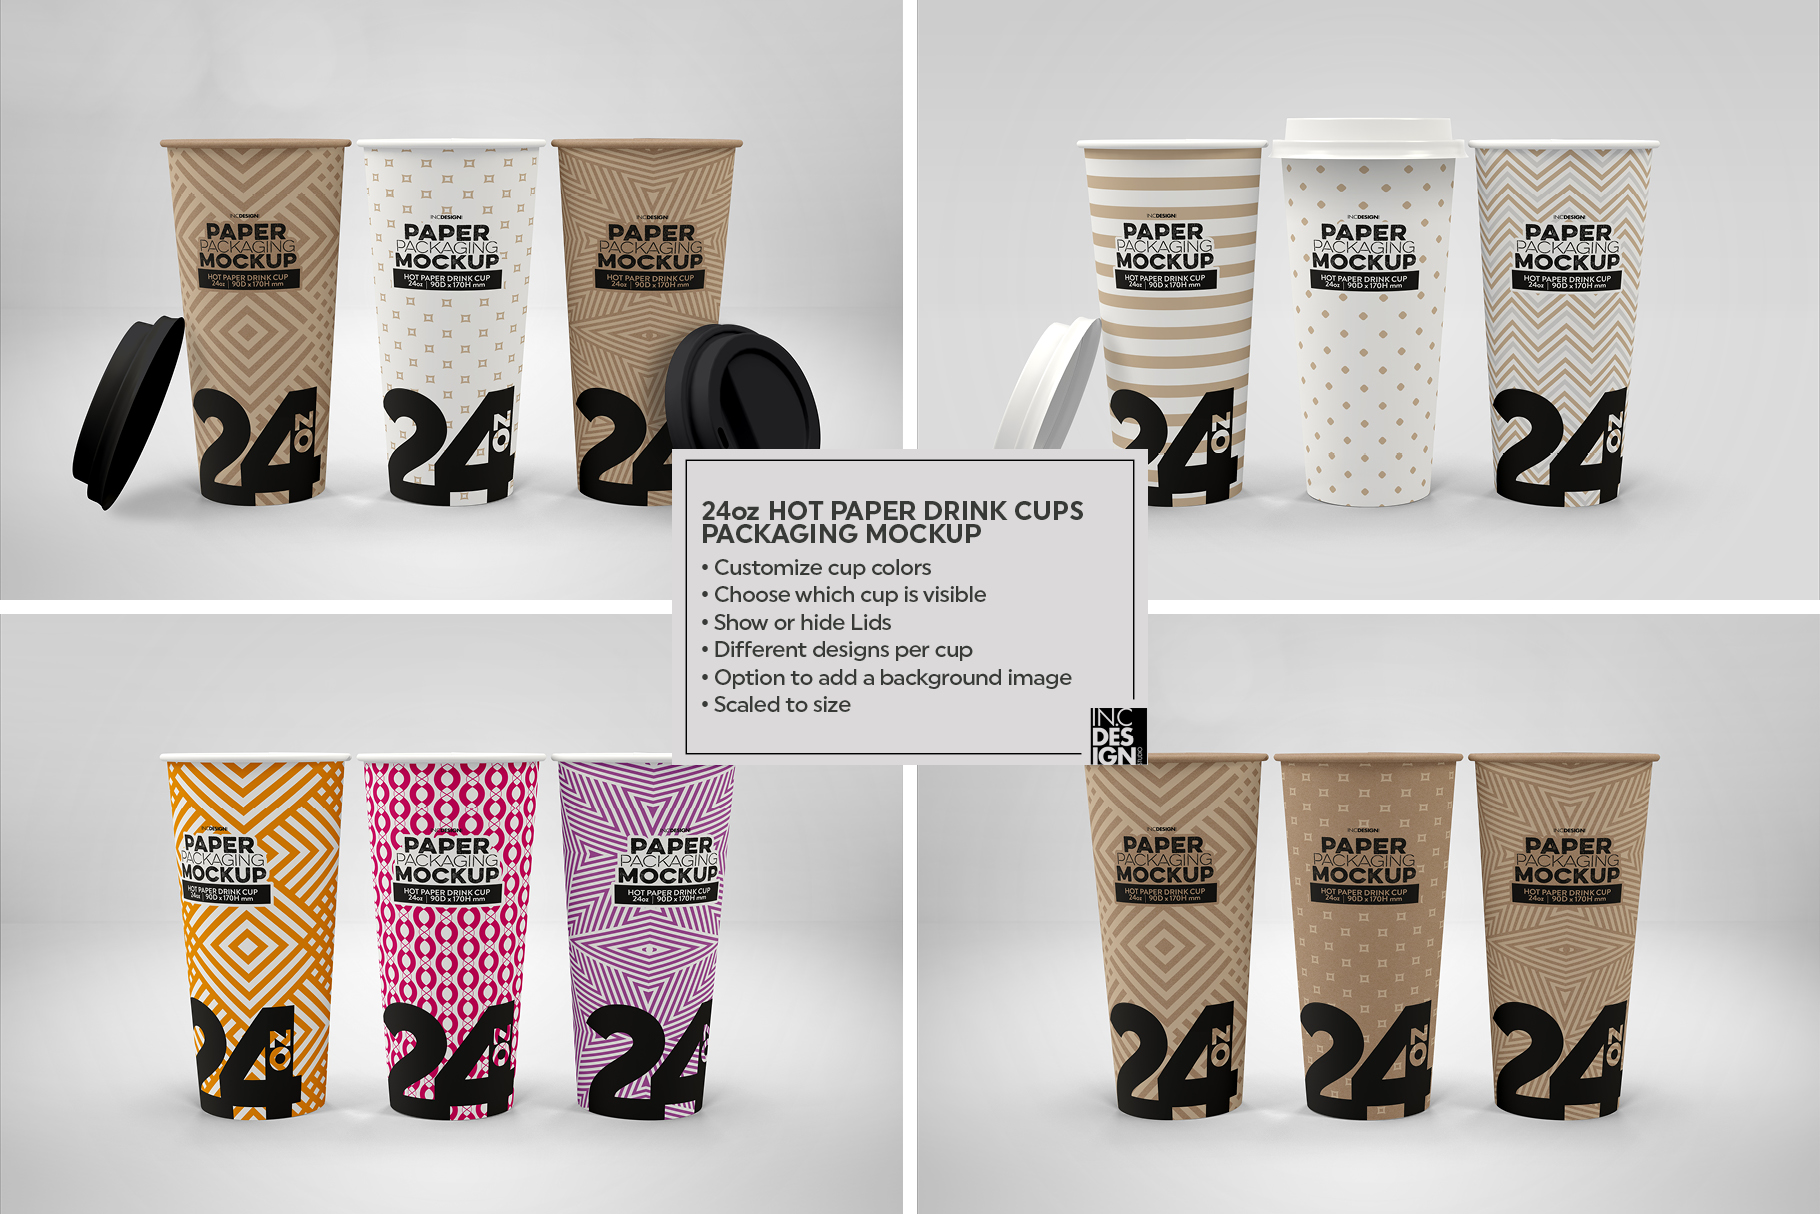 Paper Hot Drink Cups Packaging Mockup example image 8